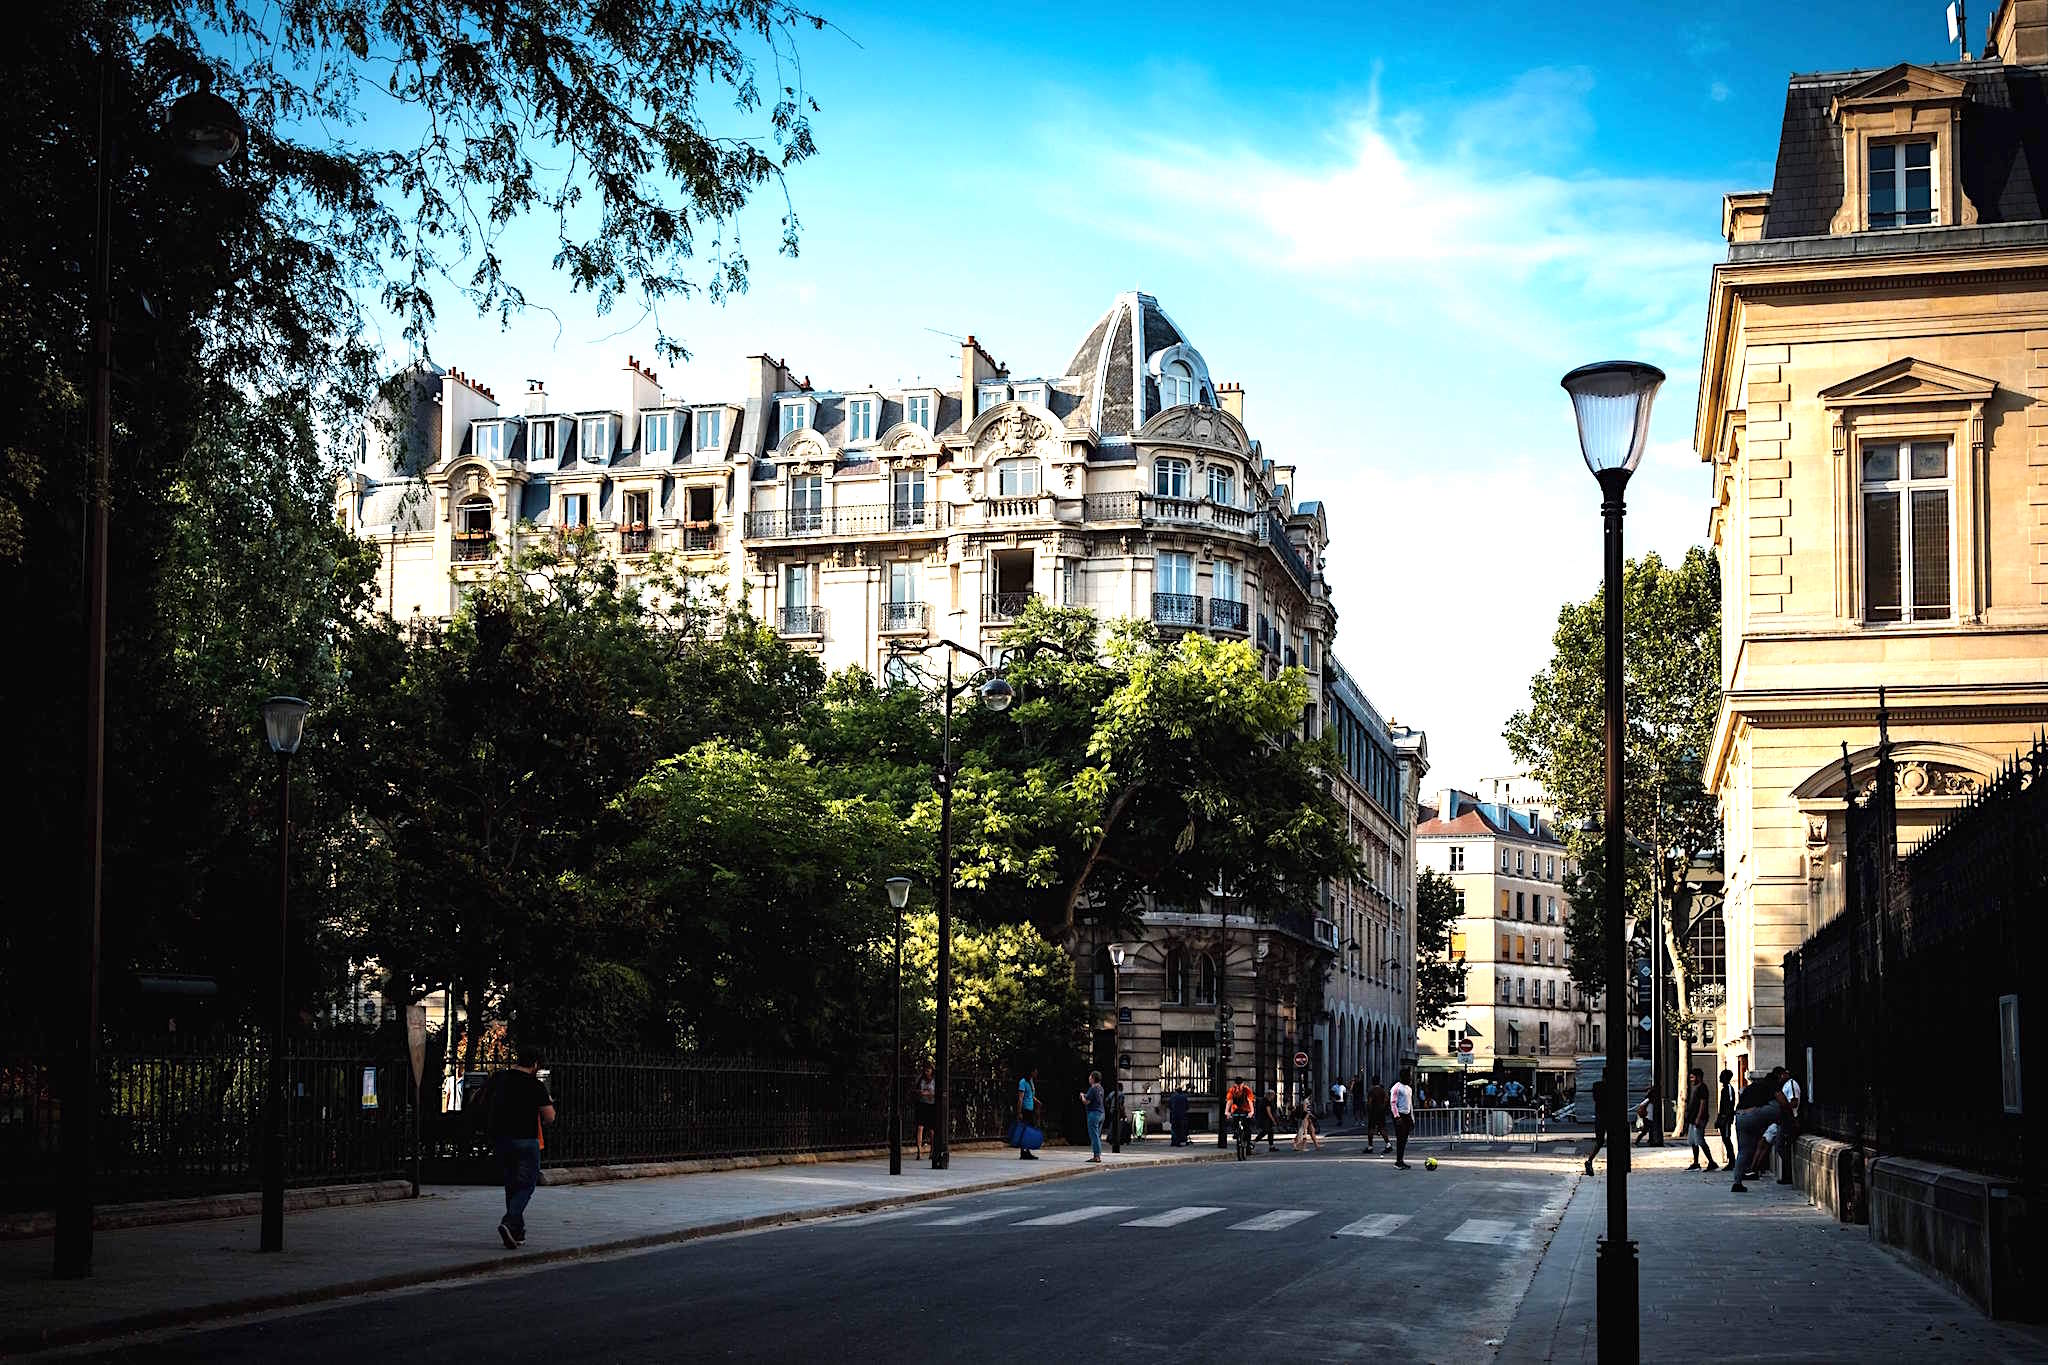 The sun hits the top of a beautiful Haussmann style apartment and green trees as pedestrians walk along the street in Paris.